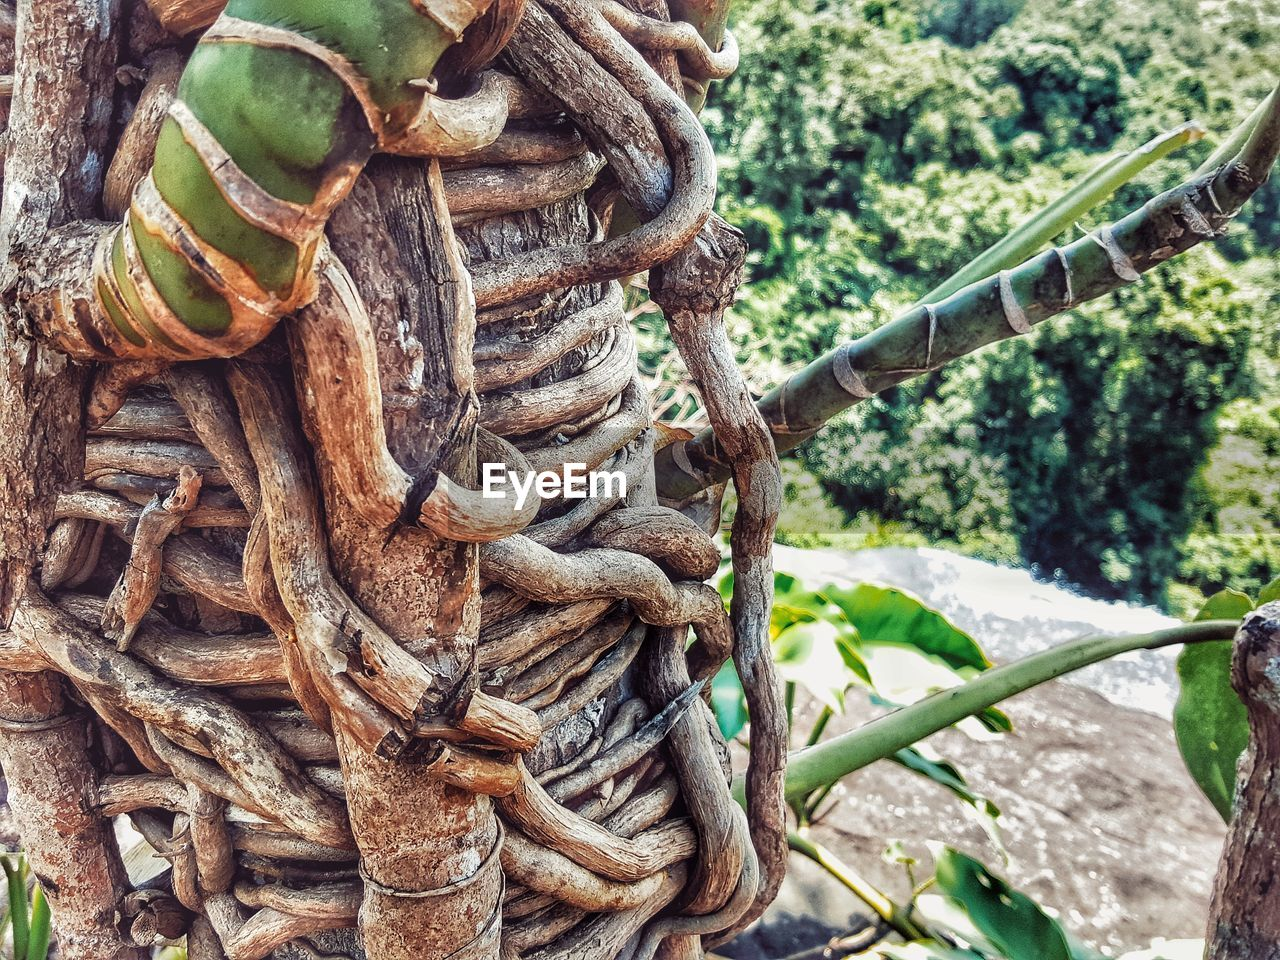 strength, day, rope, focus on foreground, no people, close-up, metal, nature, tied up, outdoors, tree, plant, connection, wood - material, twisted, rusty, pattern, land, equipment, textured, complexity, tangled